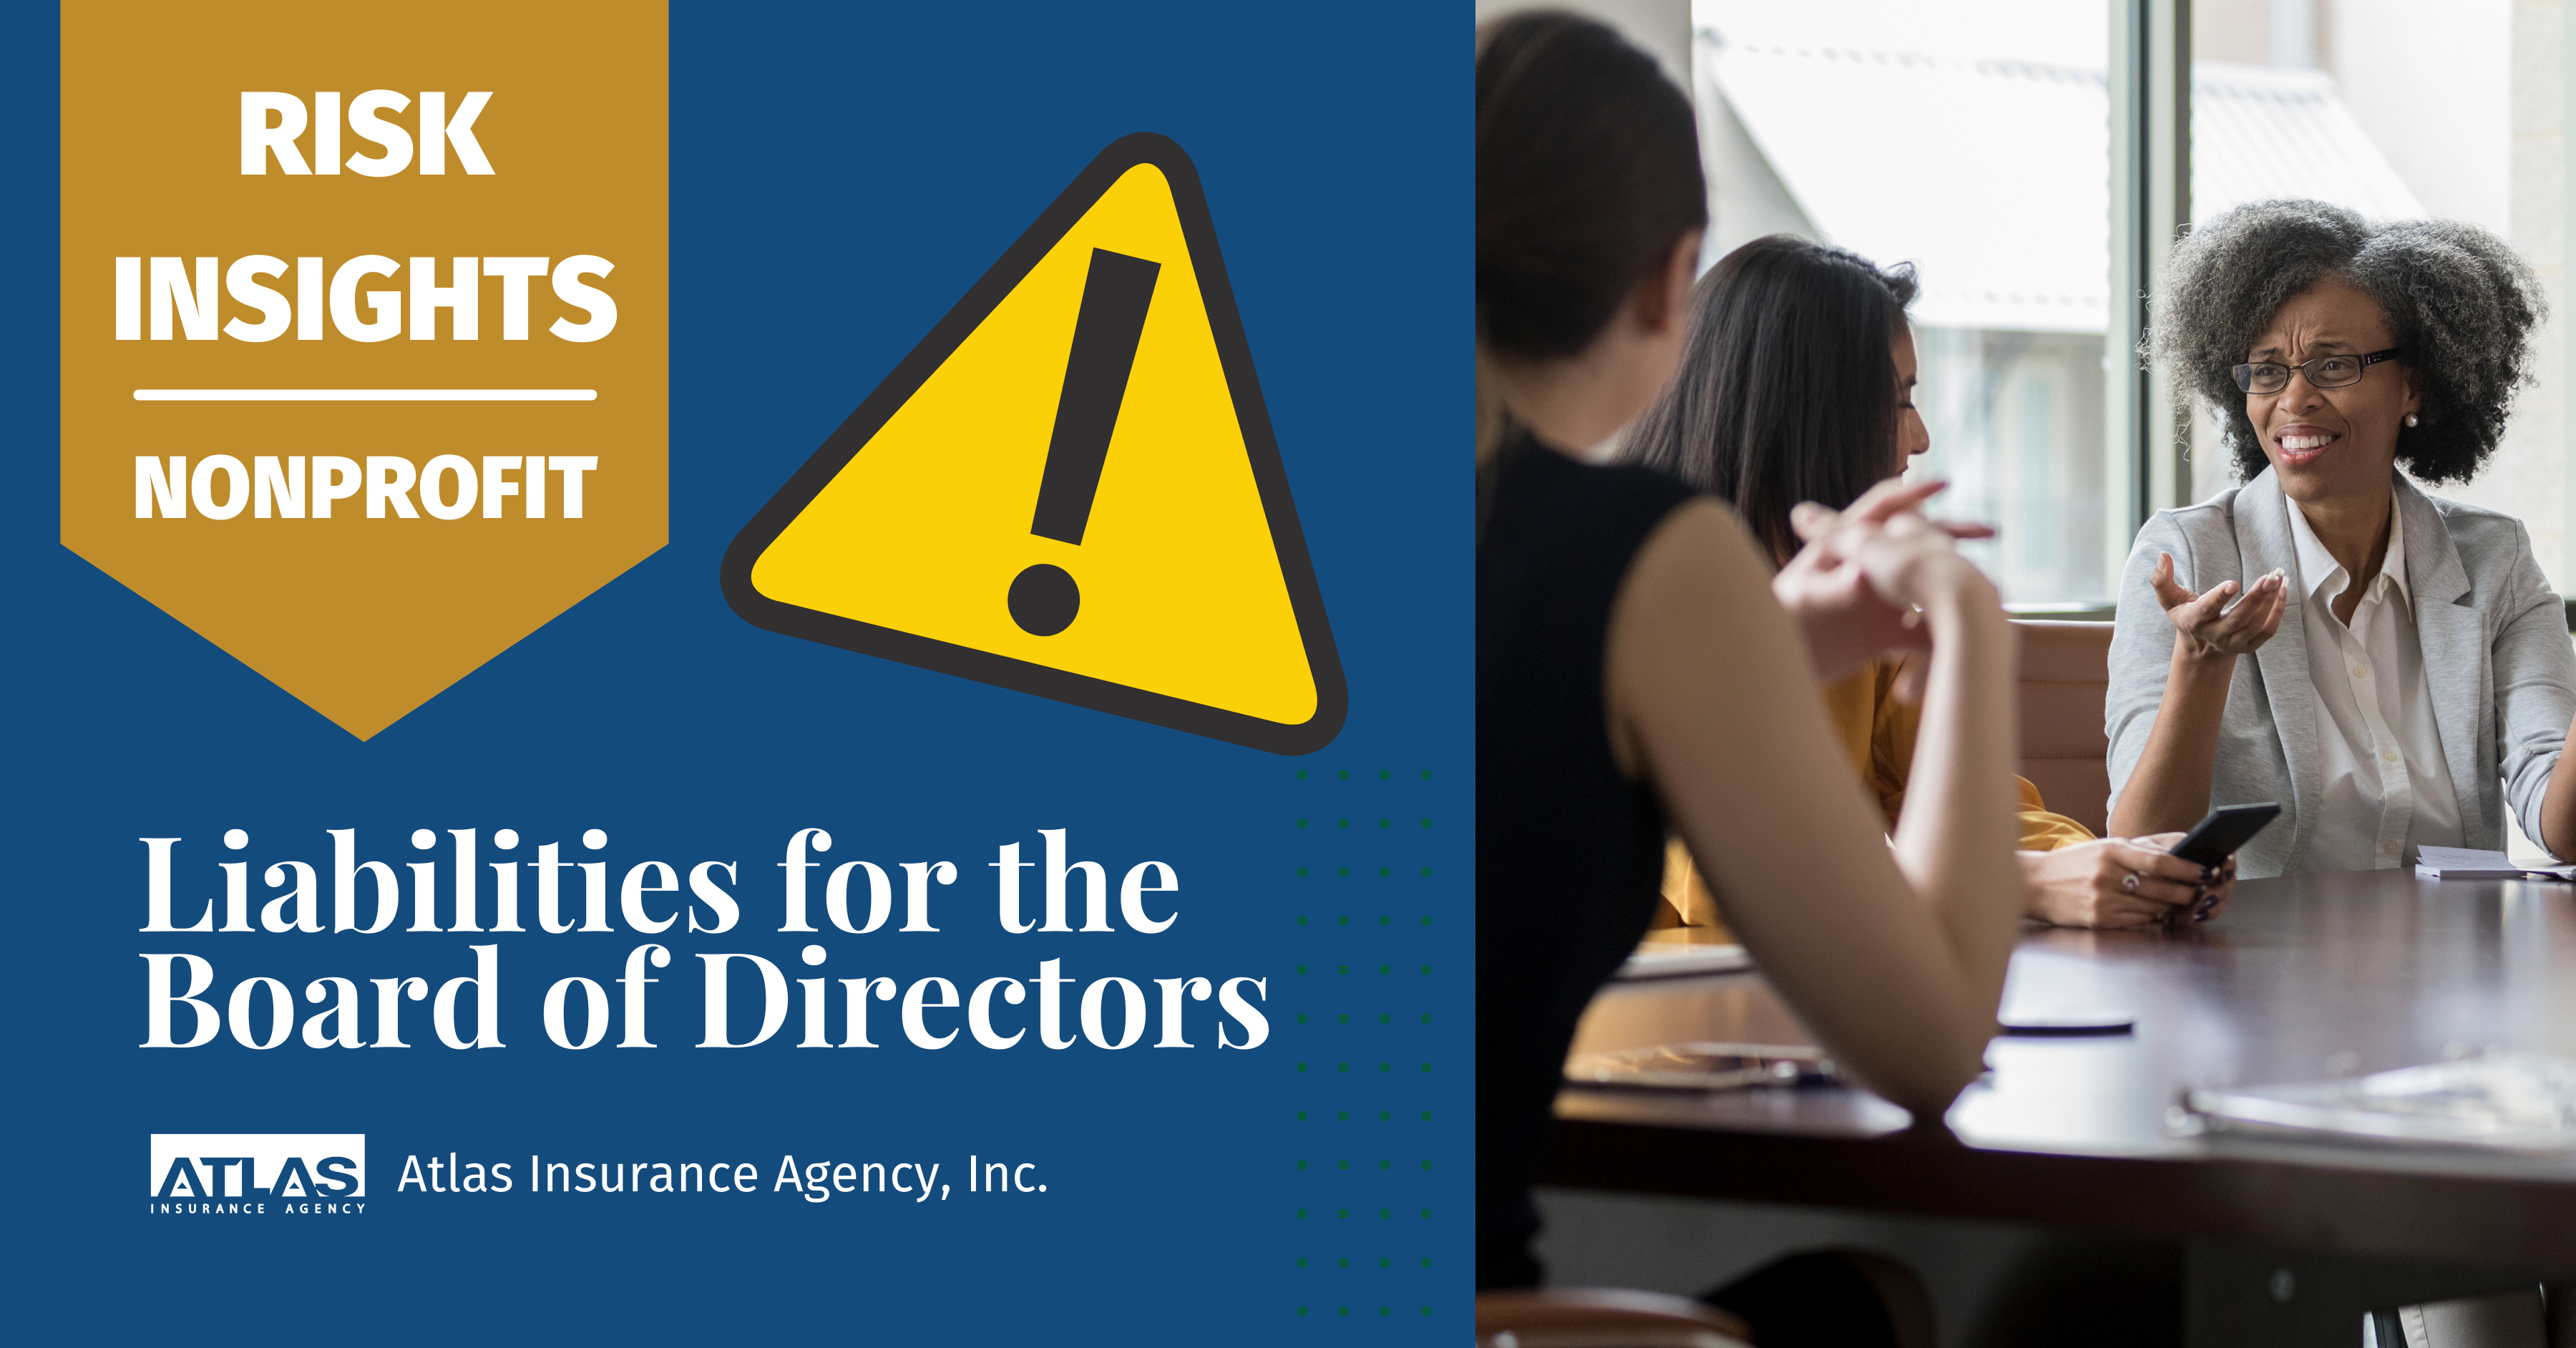 Risk Insights – Nonprofit: Liabilities for the Board of Directors